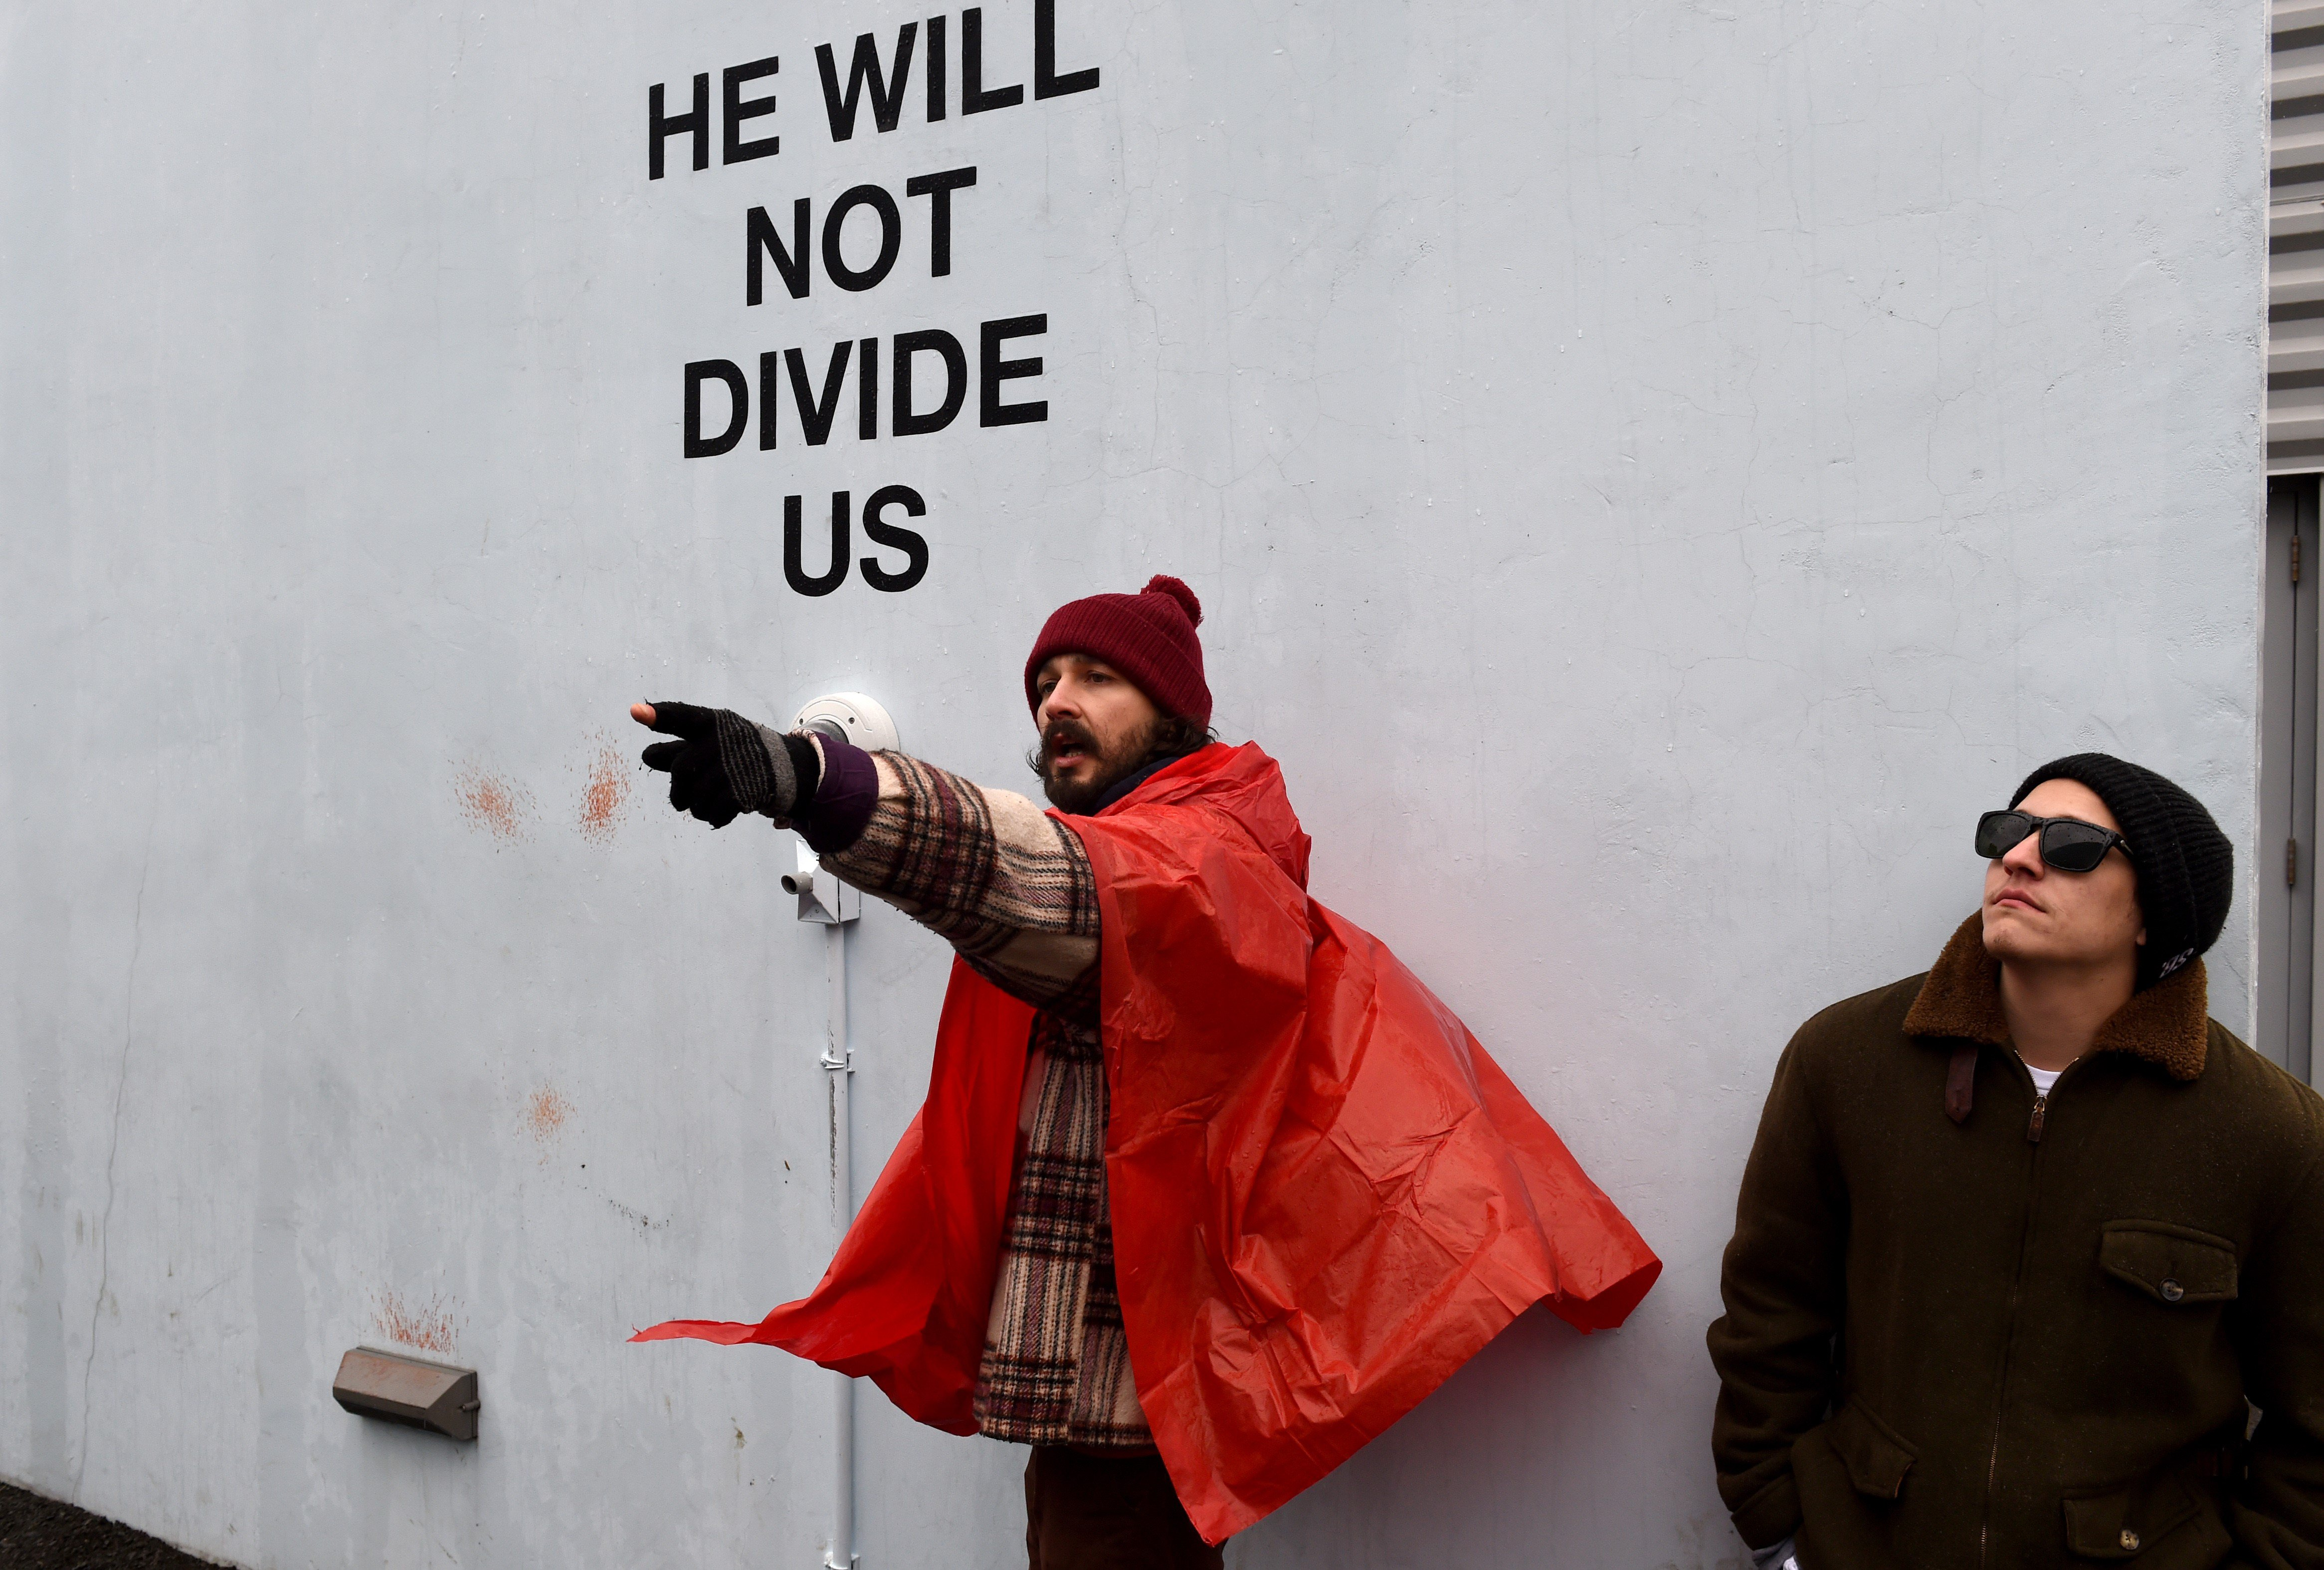 Shia LaBeouf's 'He Will Not Divide Us' Trump Protest Shut Down Due to Violence